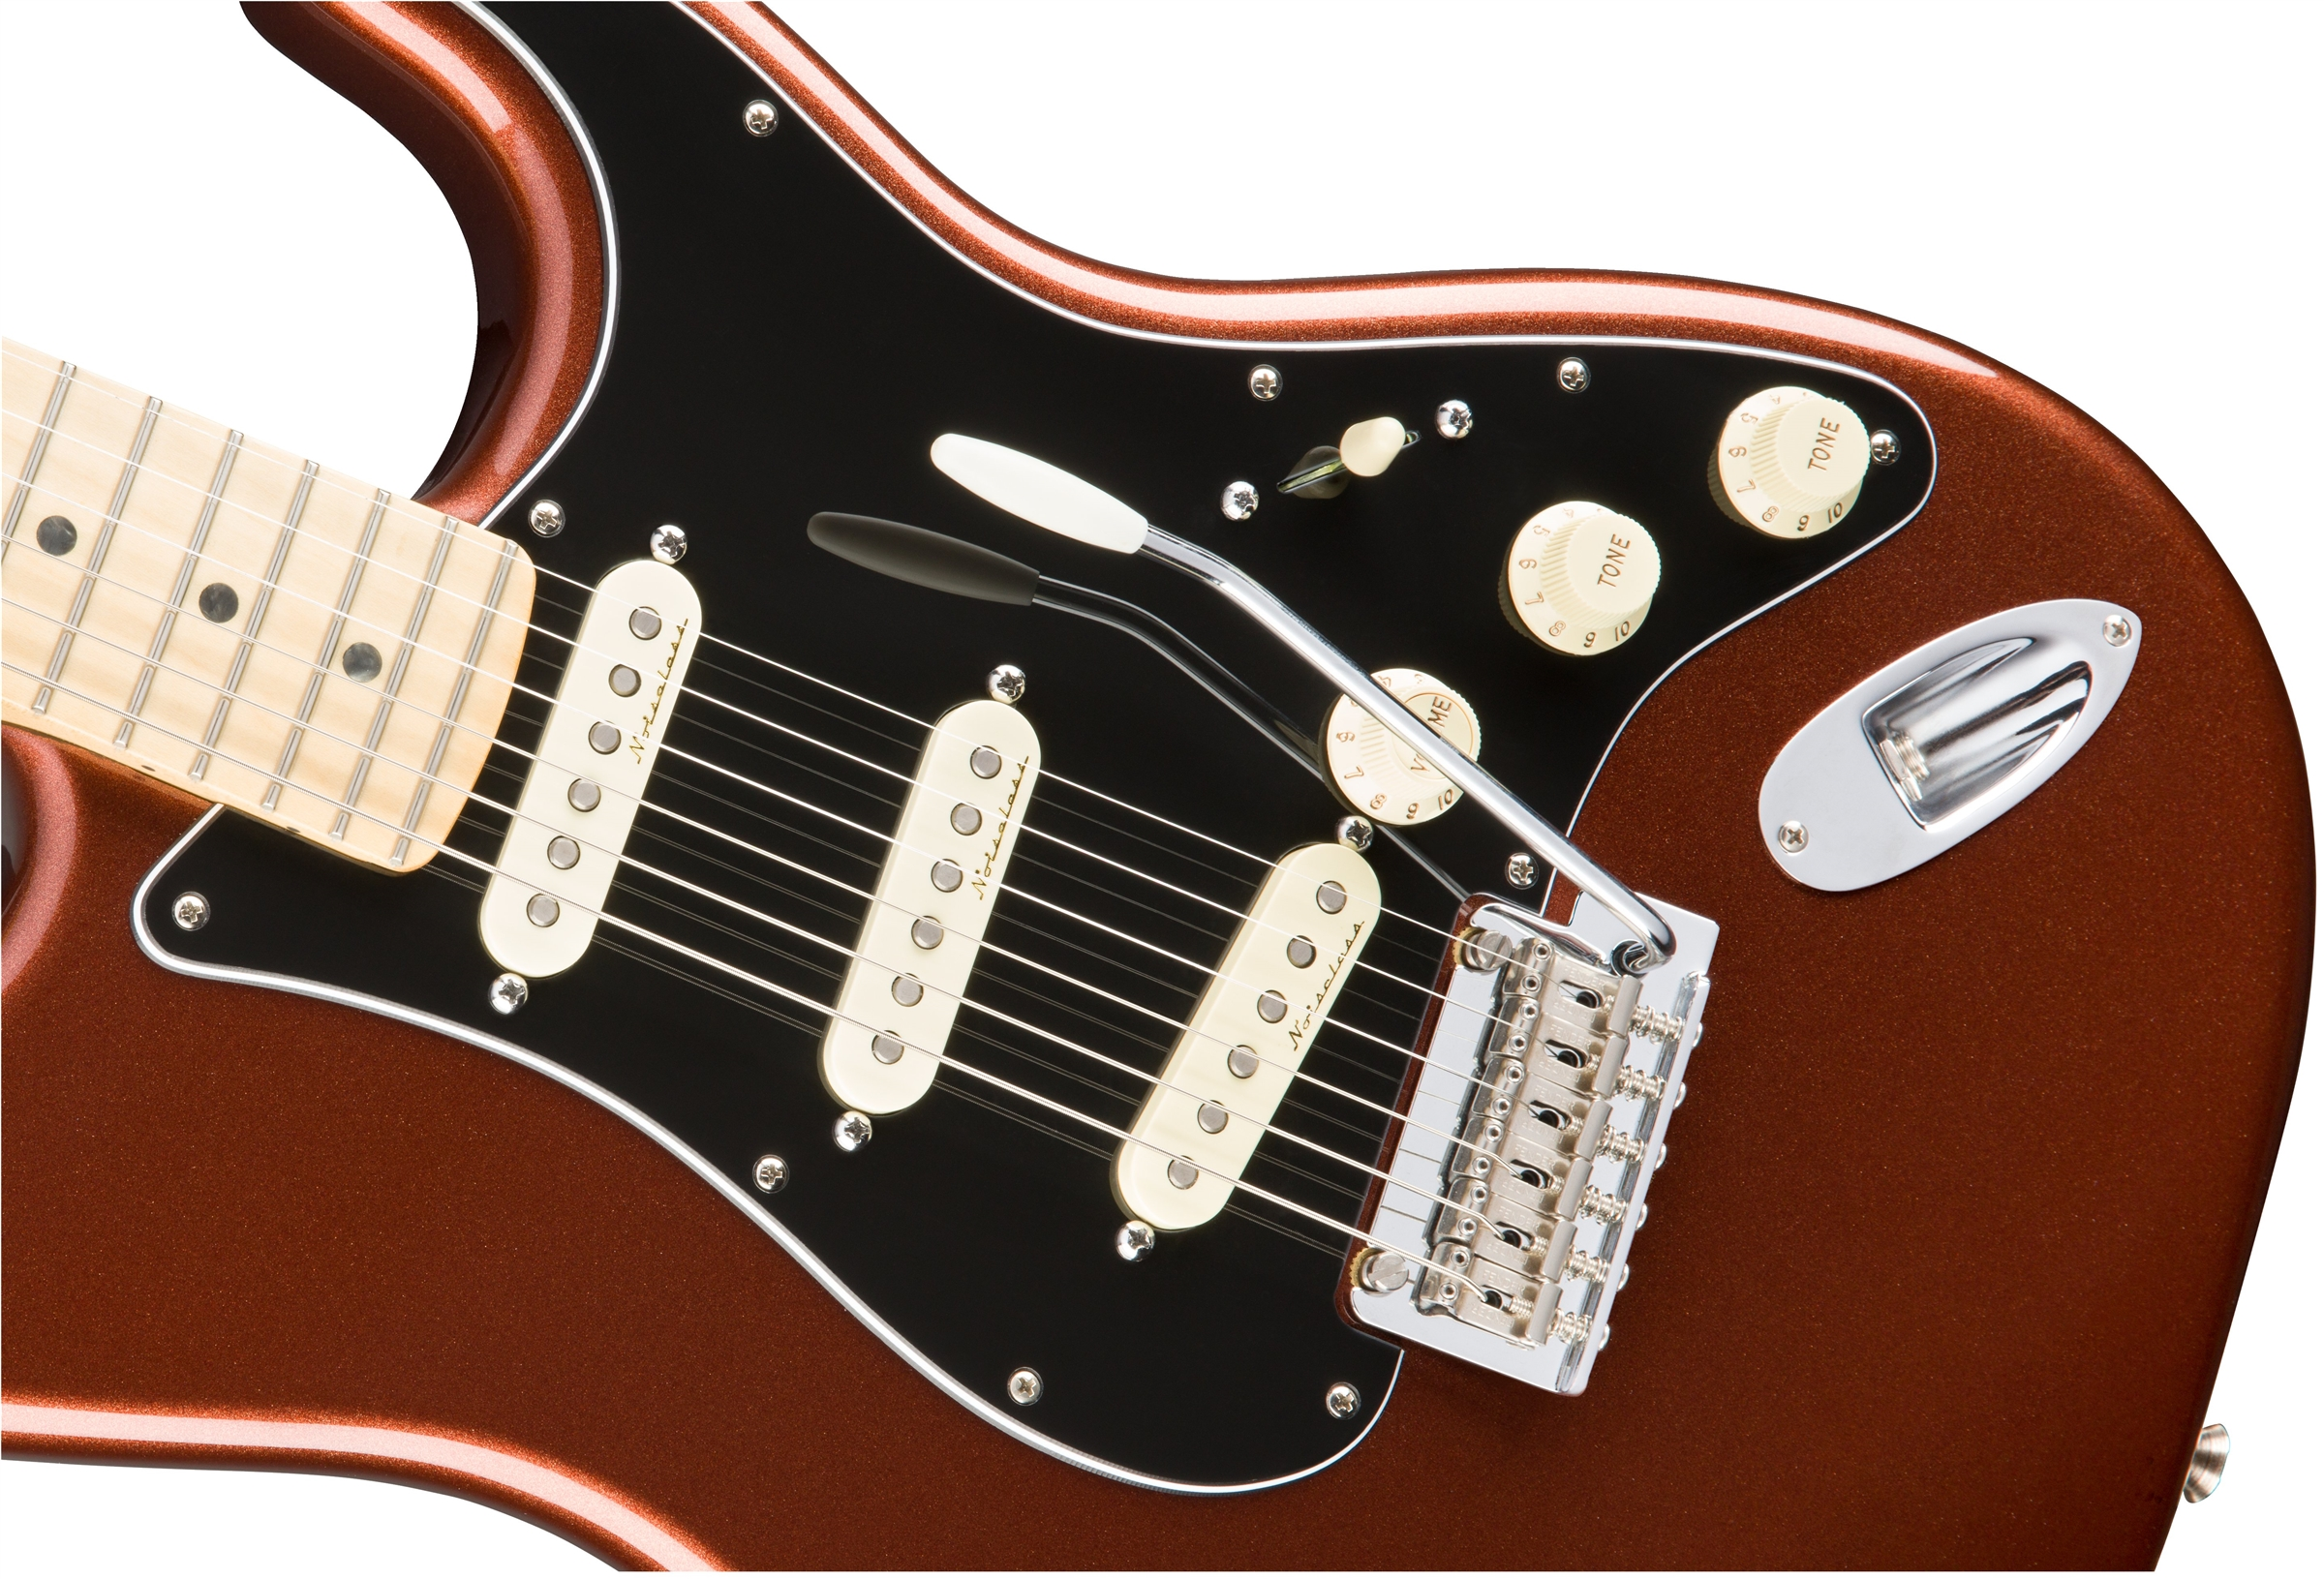 Cute Strat Style Guitar Big Ibanez Wiring Rectangular Dragonfire Pickups Wiring Diagram Les Paul 3 Pickup Wiring Old Dimarzio Color Code SoftCar Alarm Installation Instructions Fender Deluxe Roadhouse Stratocaster®, Maple Fingerboard, Classic ..